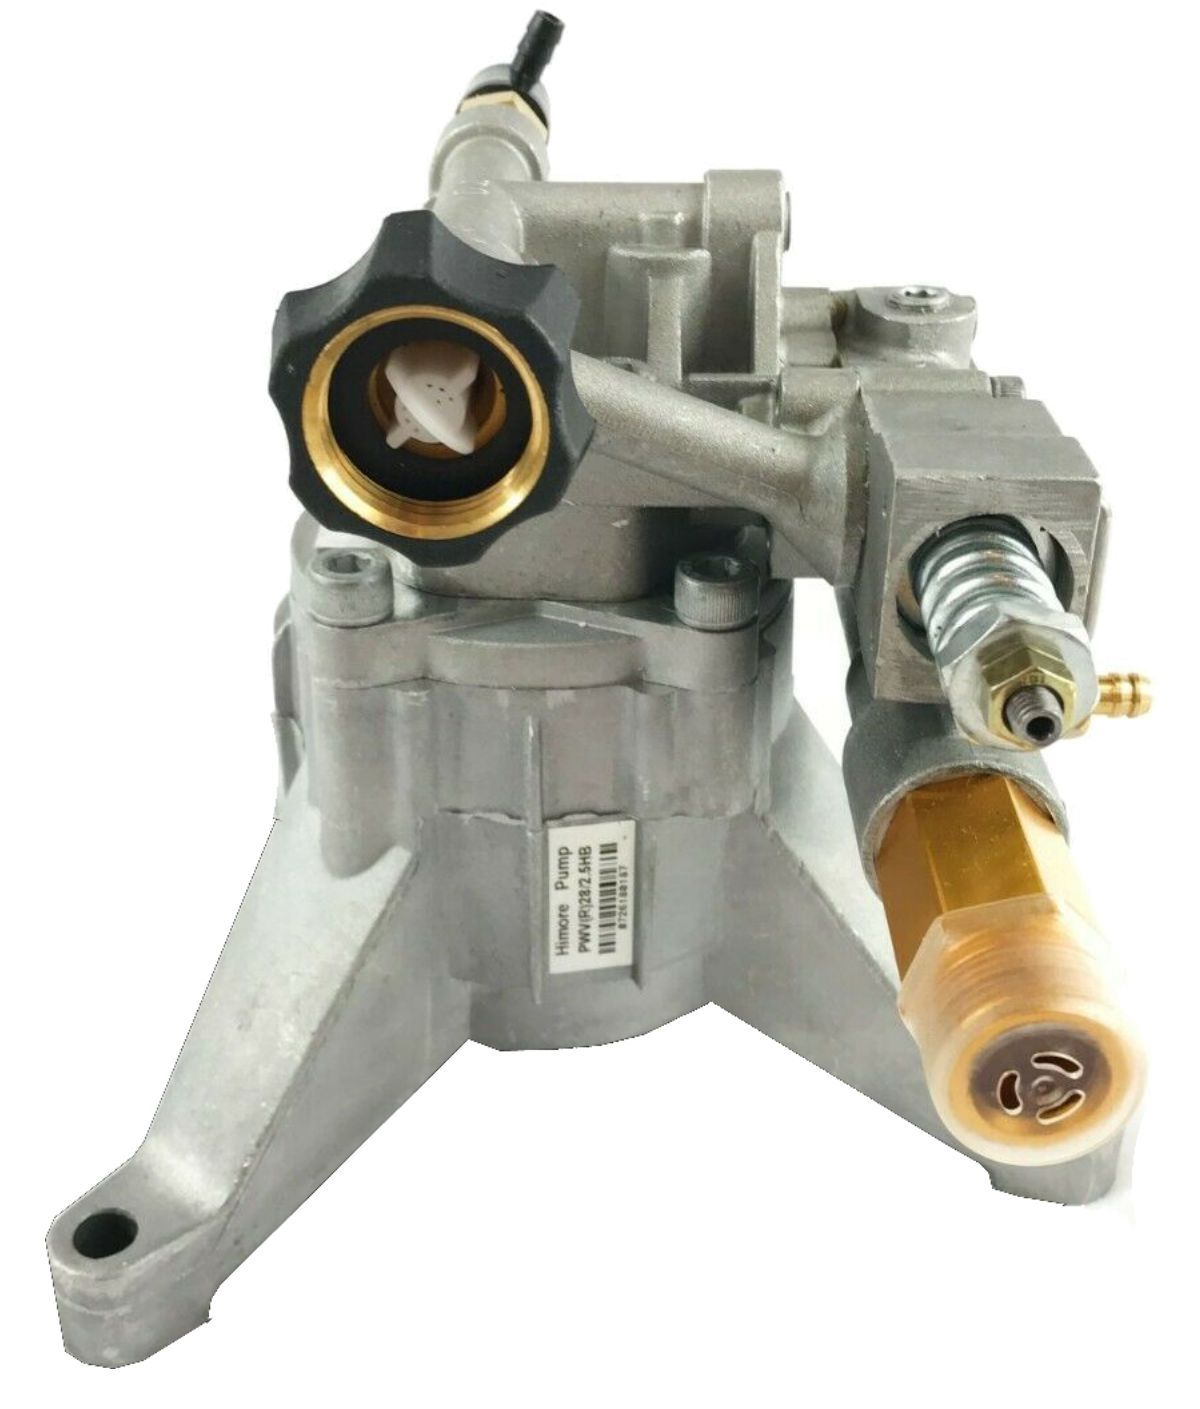 2700 PSI PRESSURE WASHER WATER PUMP Brute 020300-0 020384-0 - AE-Power